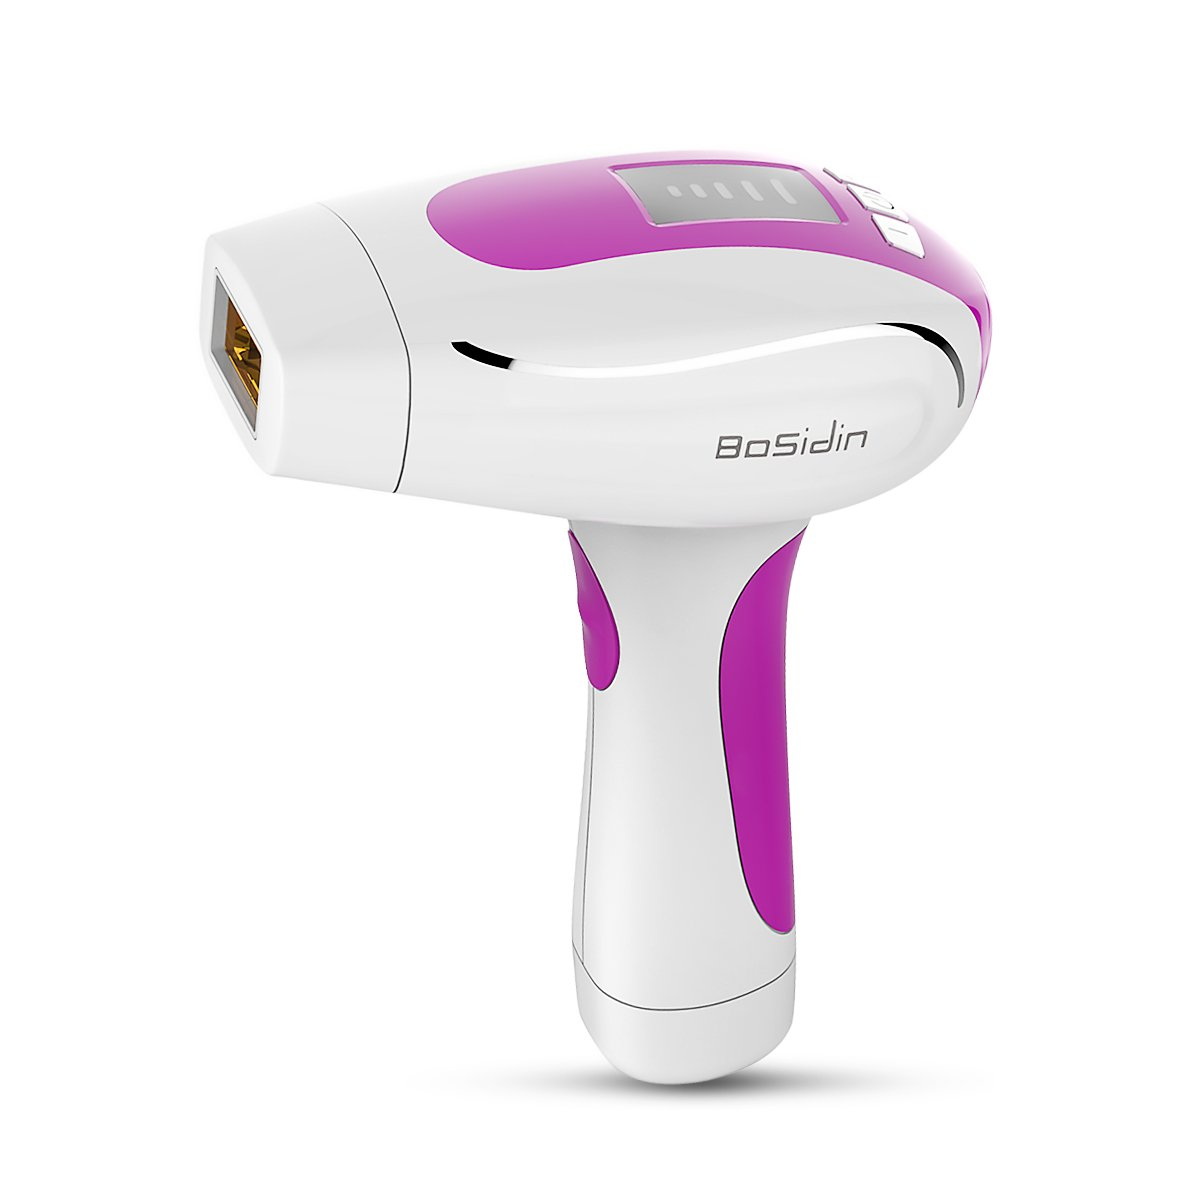 Hair Removal Device Light Hair Removal Shaving Epilator No Pain With No Side Effects Personal Care Professional Hair Remover Device For Arm, Underarm, Bikini Line & Legs